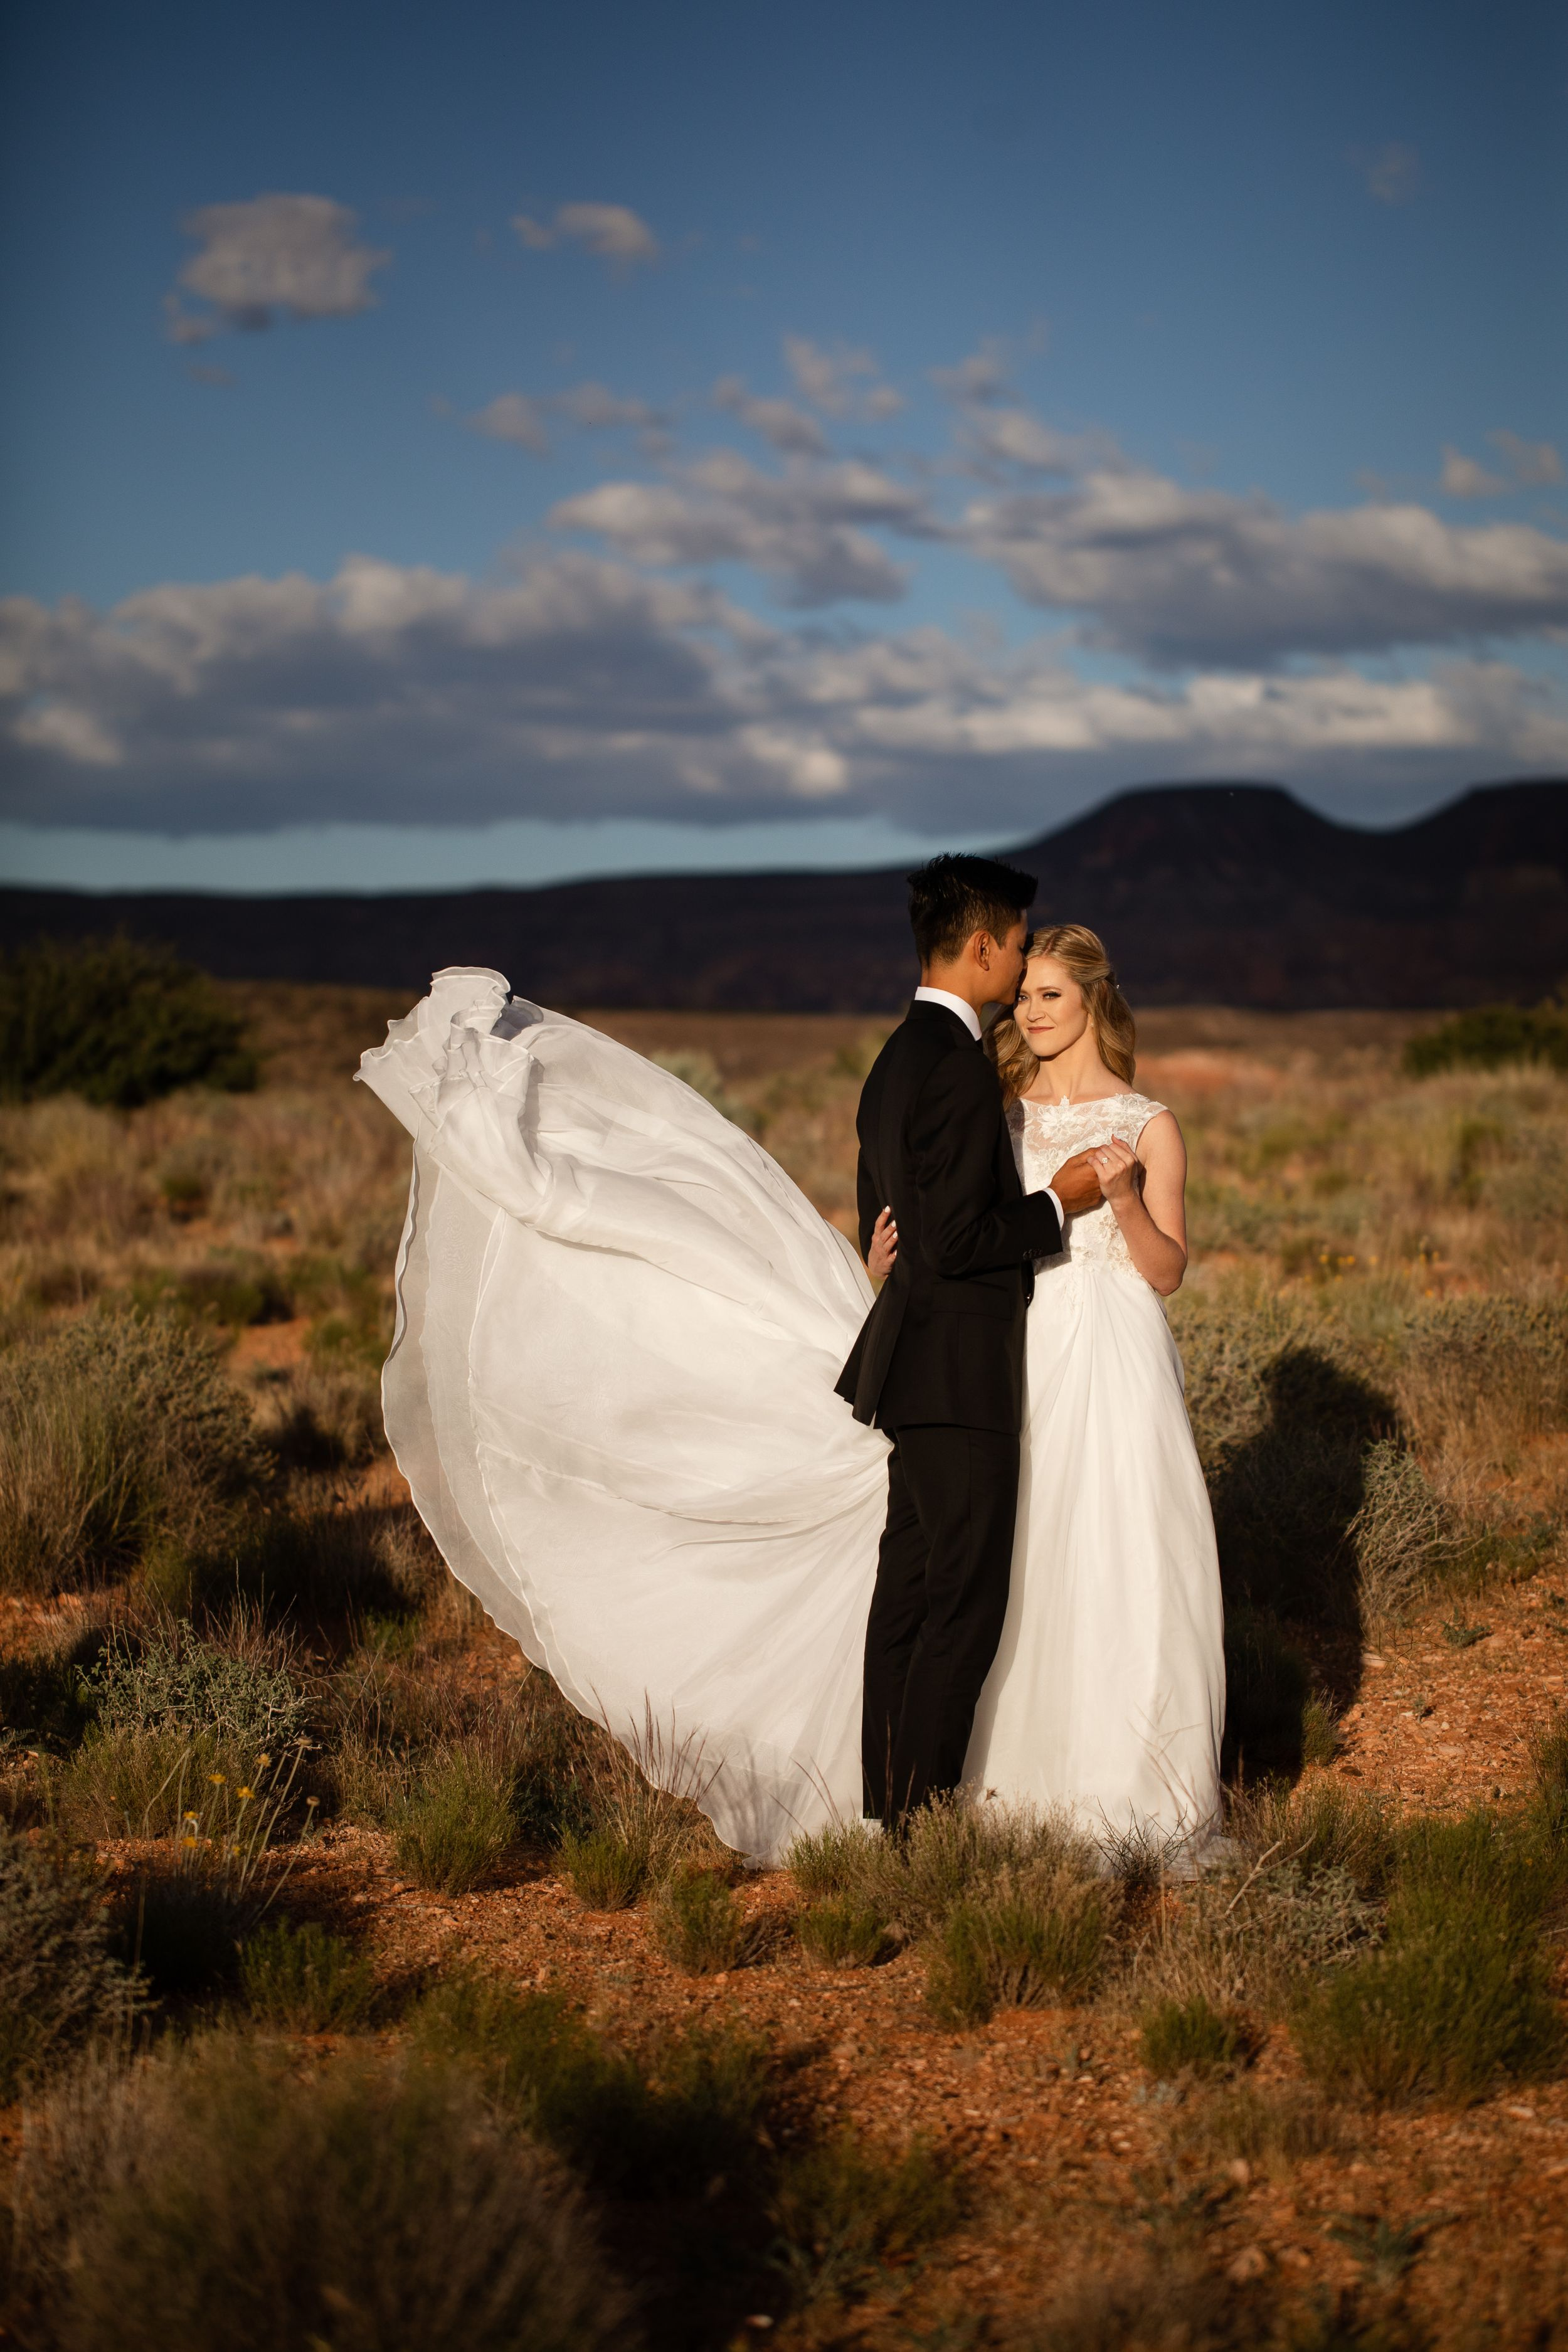 Bride's dress flying in the desert wind.